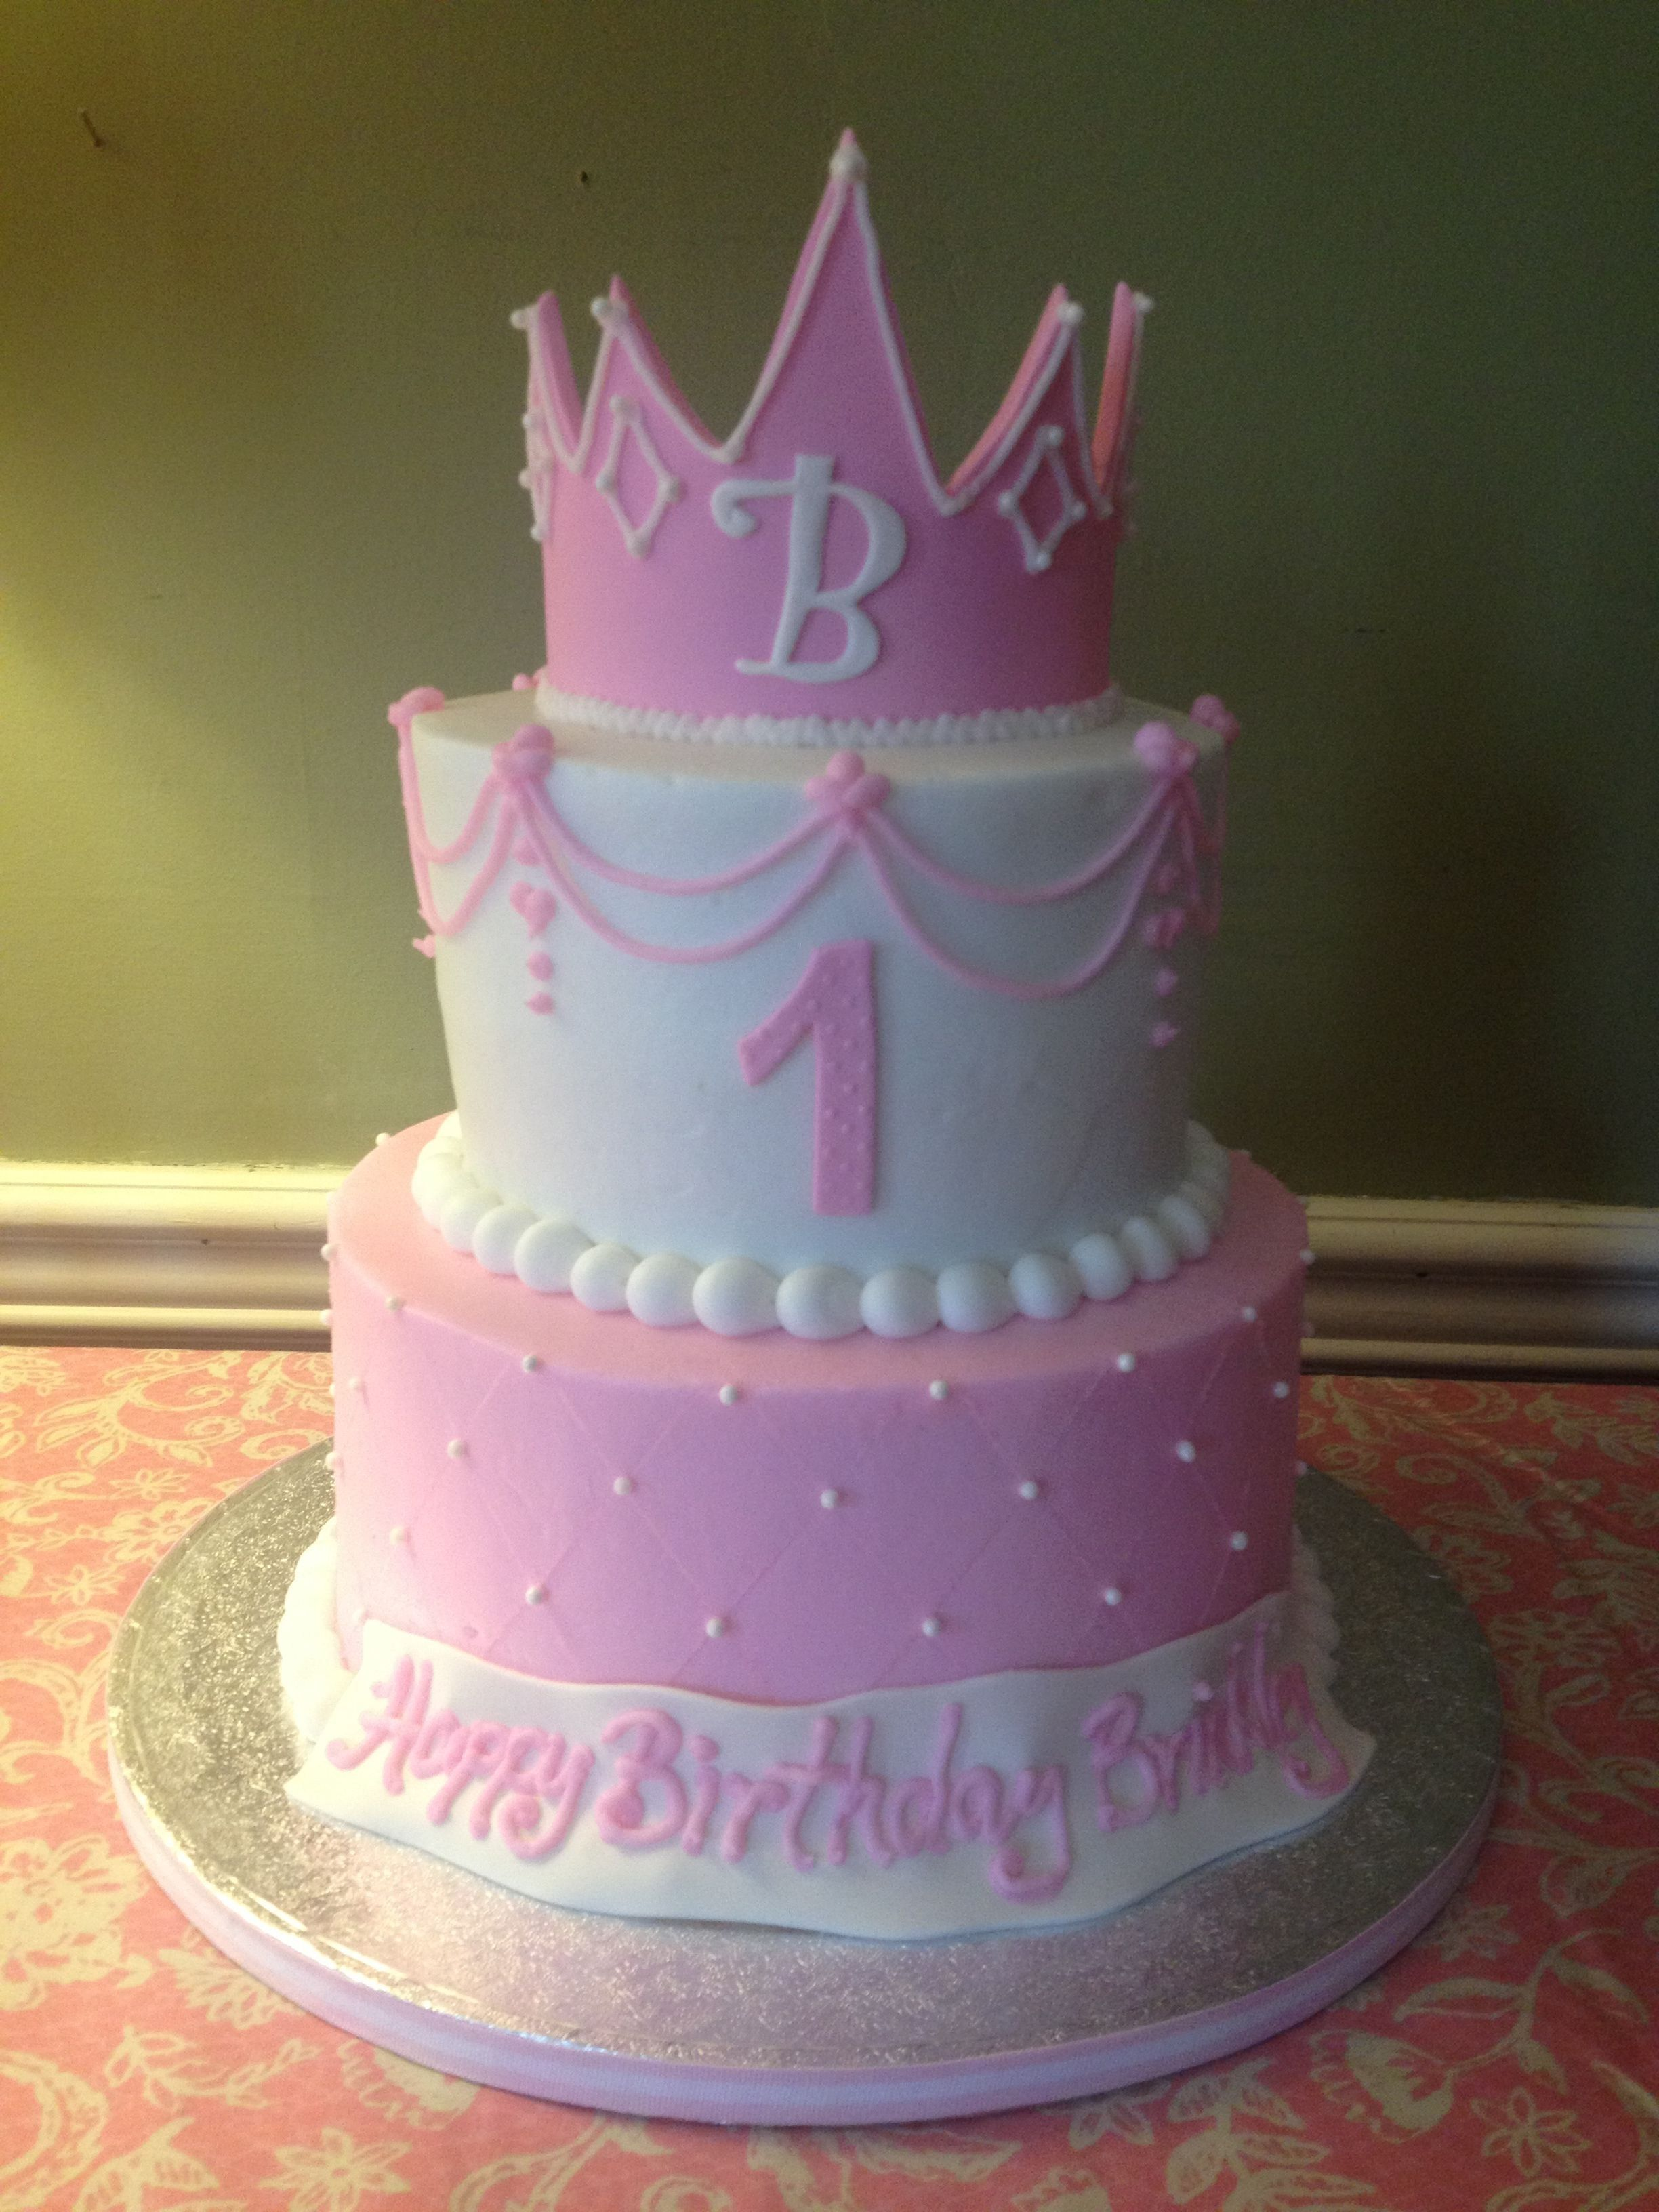 27 Inspired Image Of 1St Birthday Cake Girl Ba Girls First Princess And Crown Pink The BirthdayCakeImages